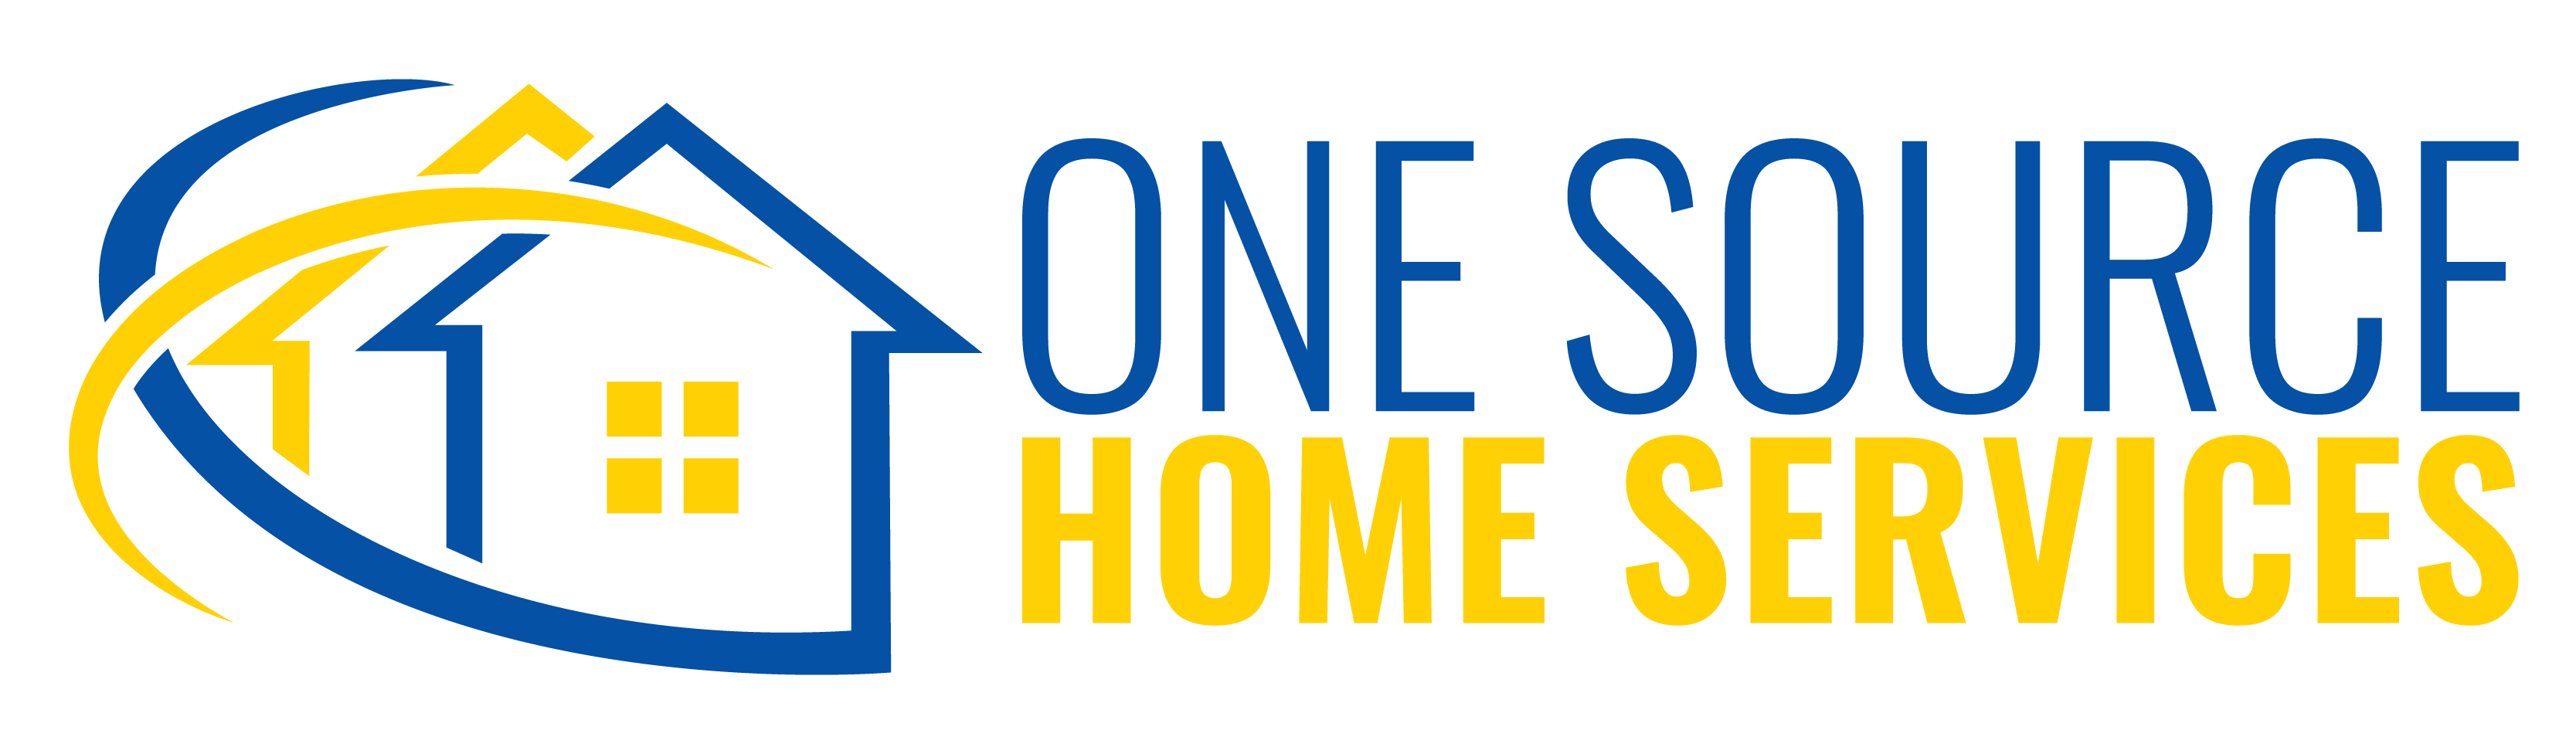 One Source Home Services, a Top Heating Contractor in Lively Announces Expanded Service Area for Ontario